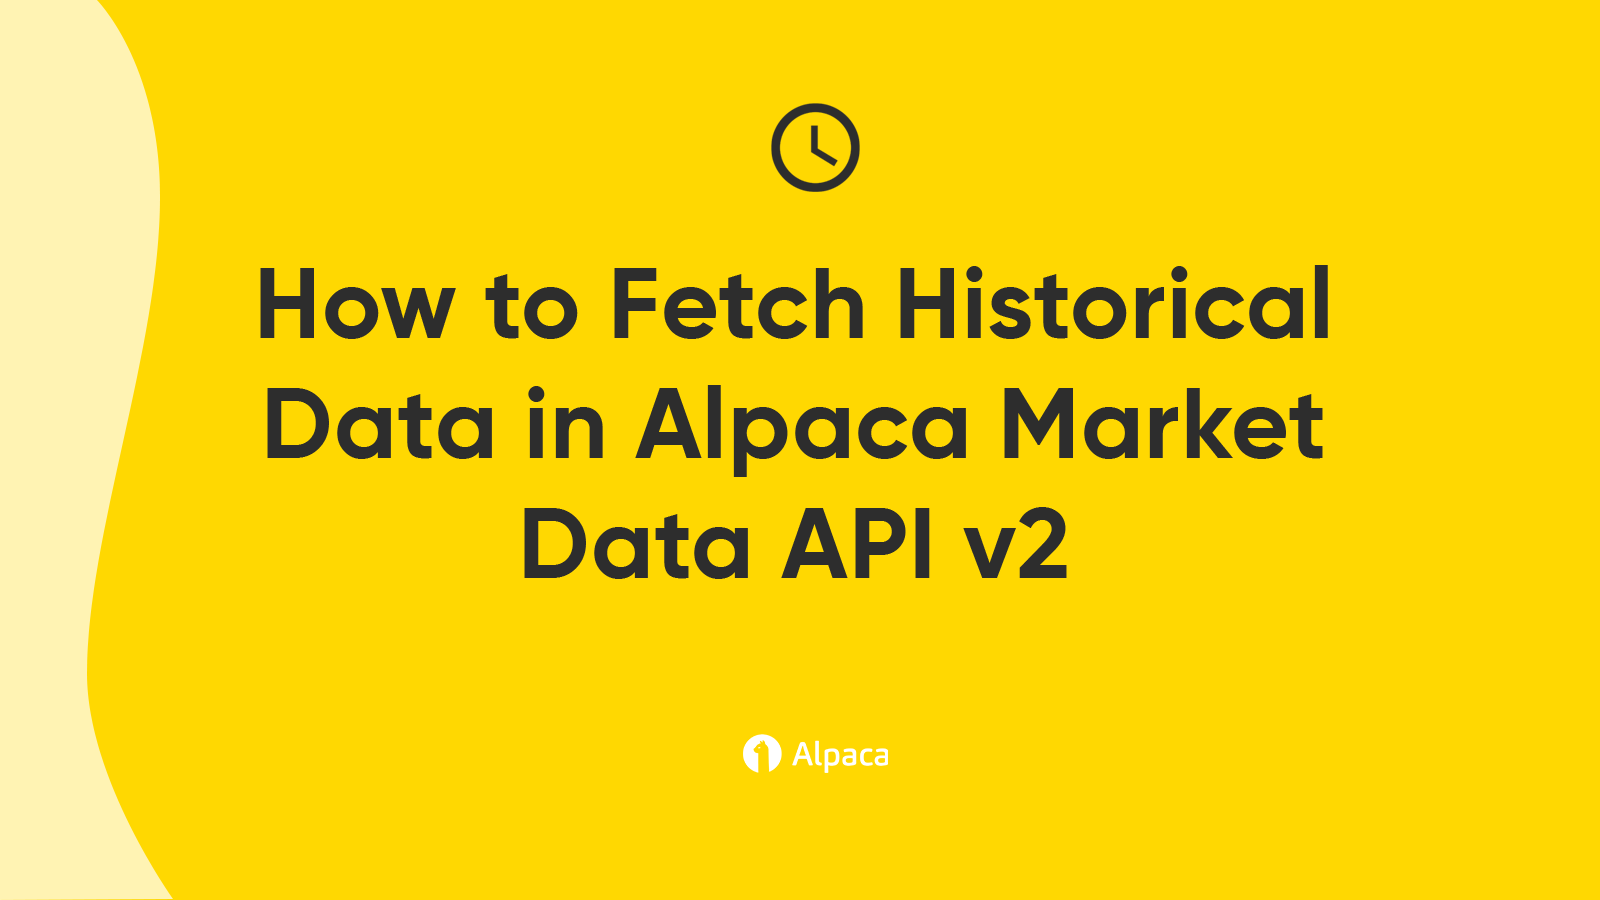 How to Fetch Historical Data in Alpaca Market Data API v2